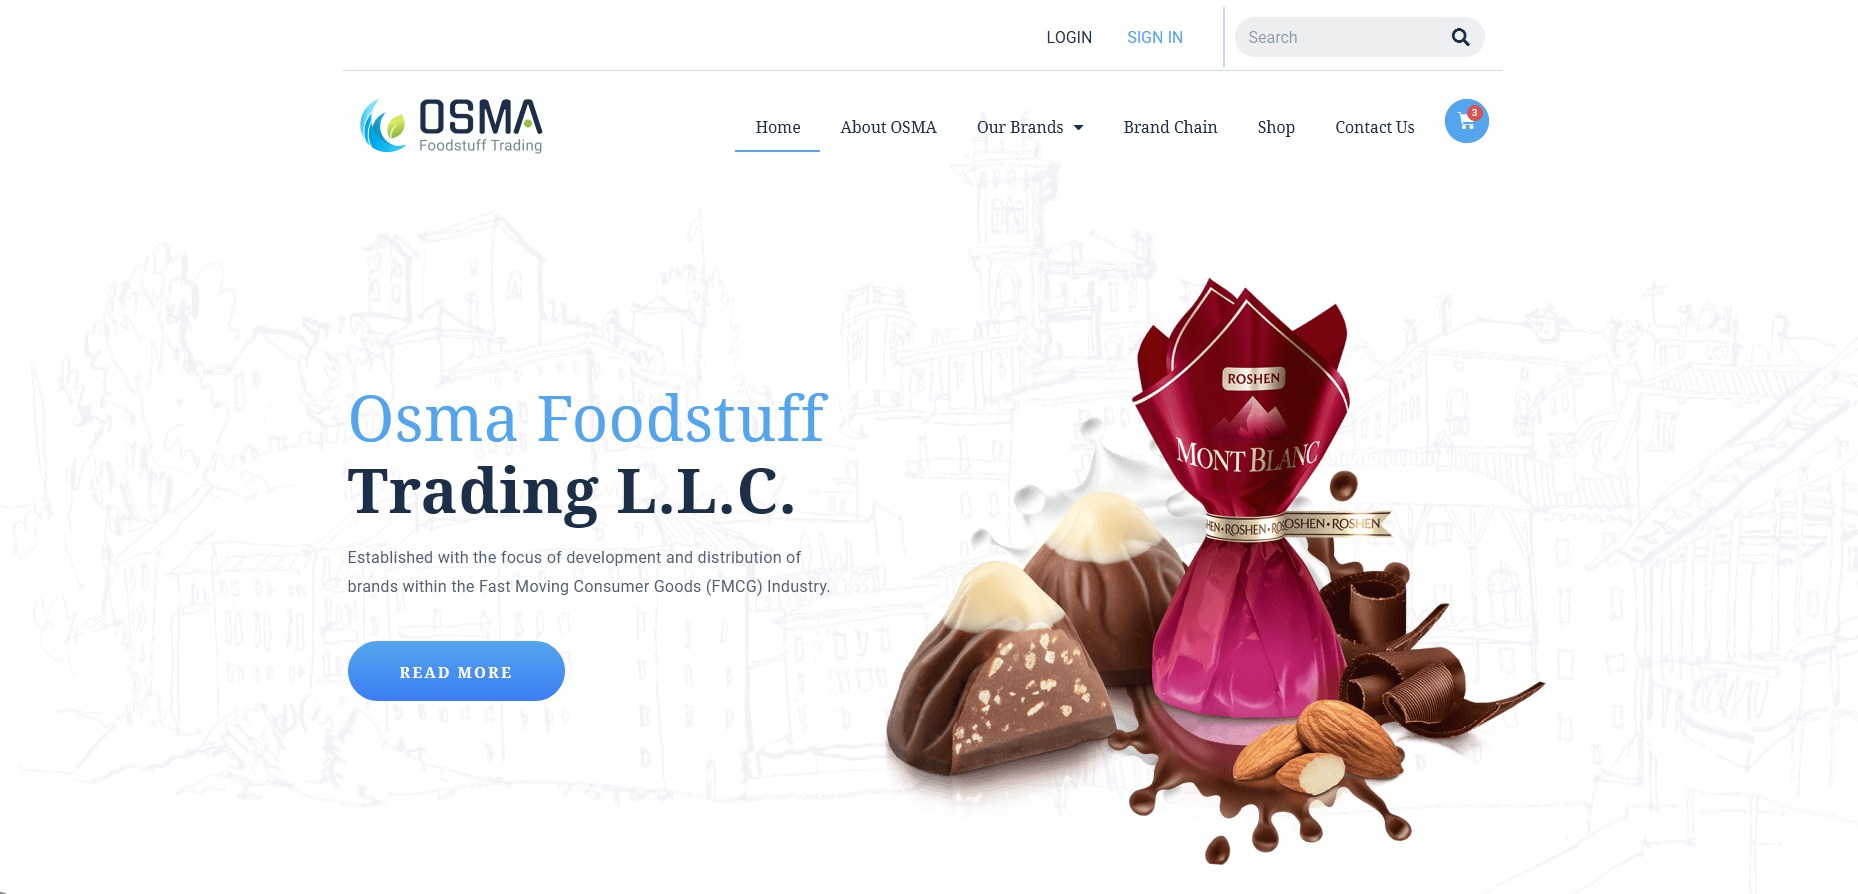 OSMA Web Development Portfolio _Startup N Marketing Digital Marketing, SEO, SEM, PPC